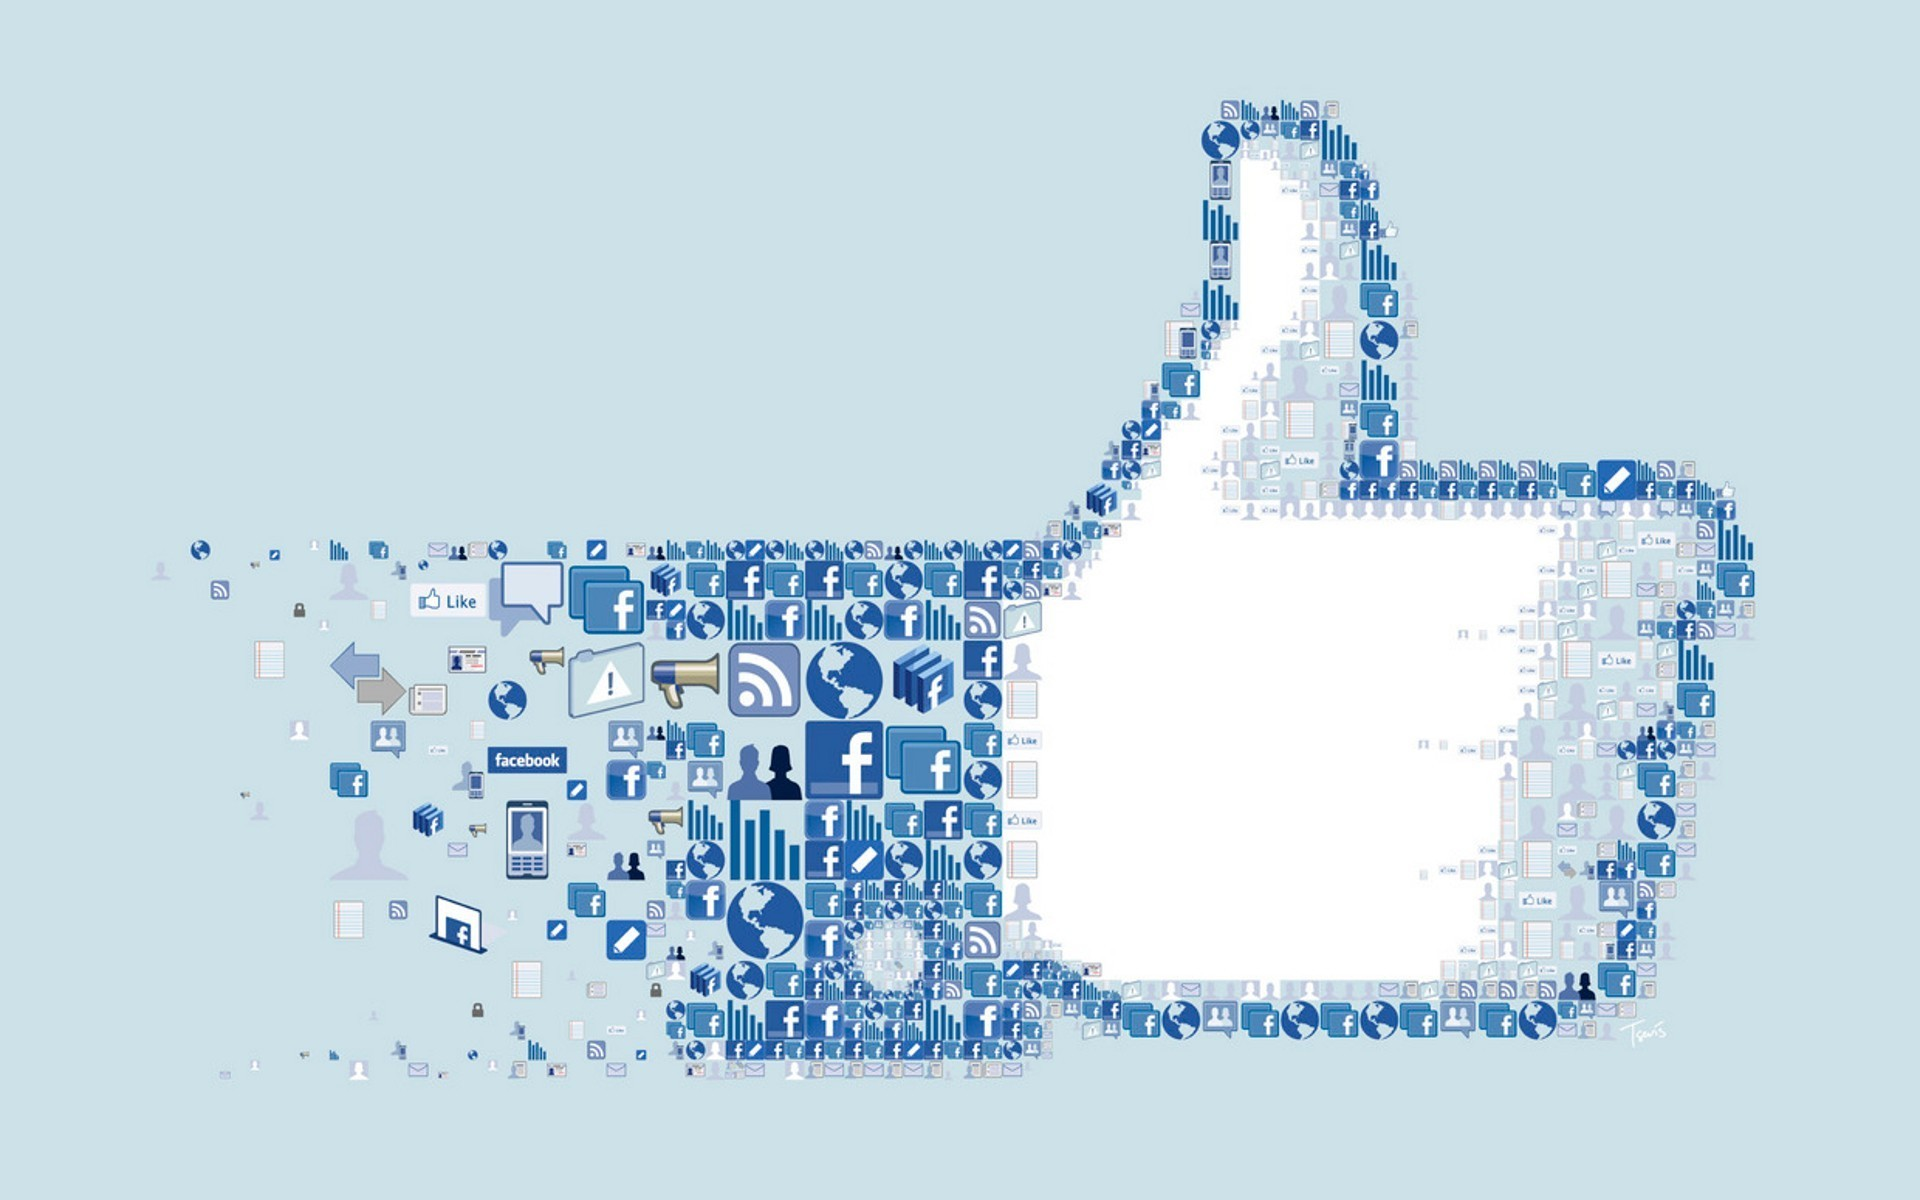 Facebook-Icons-Collage-Logo-Social-network-I-like-you